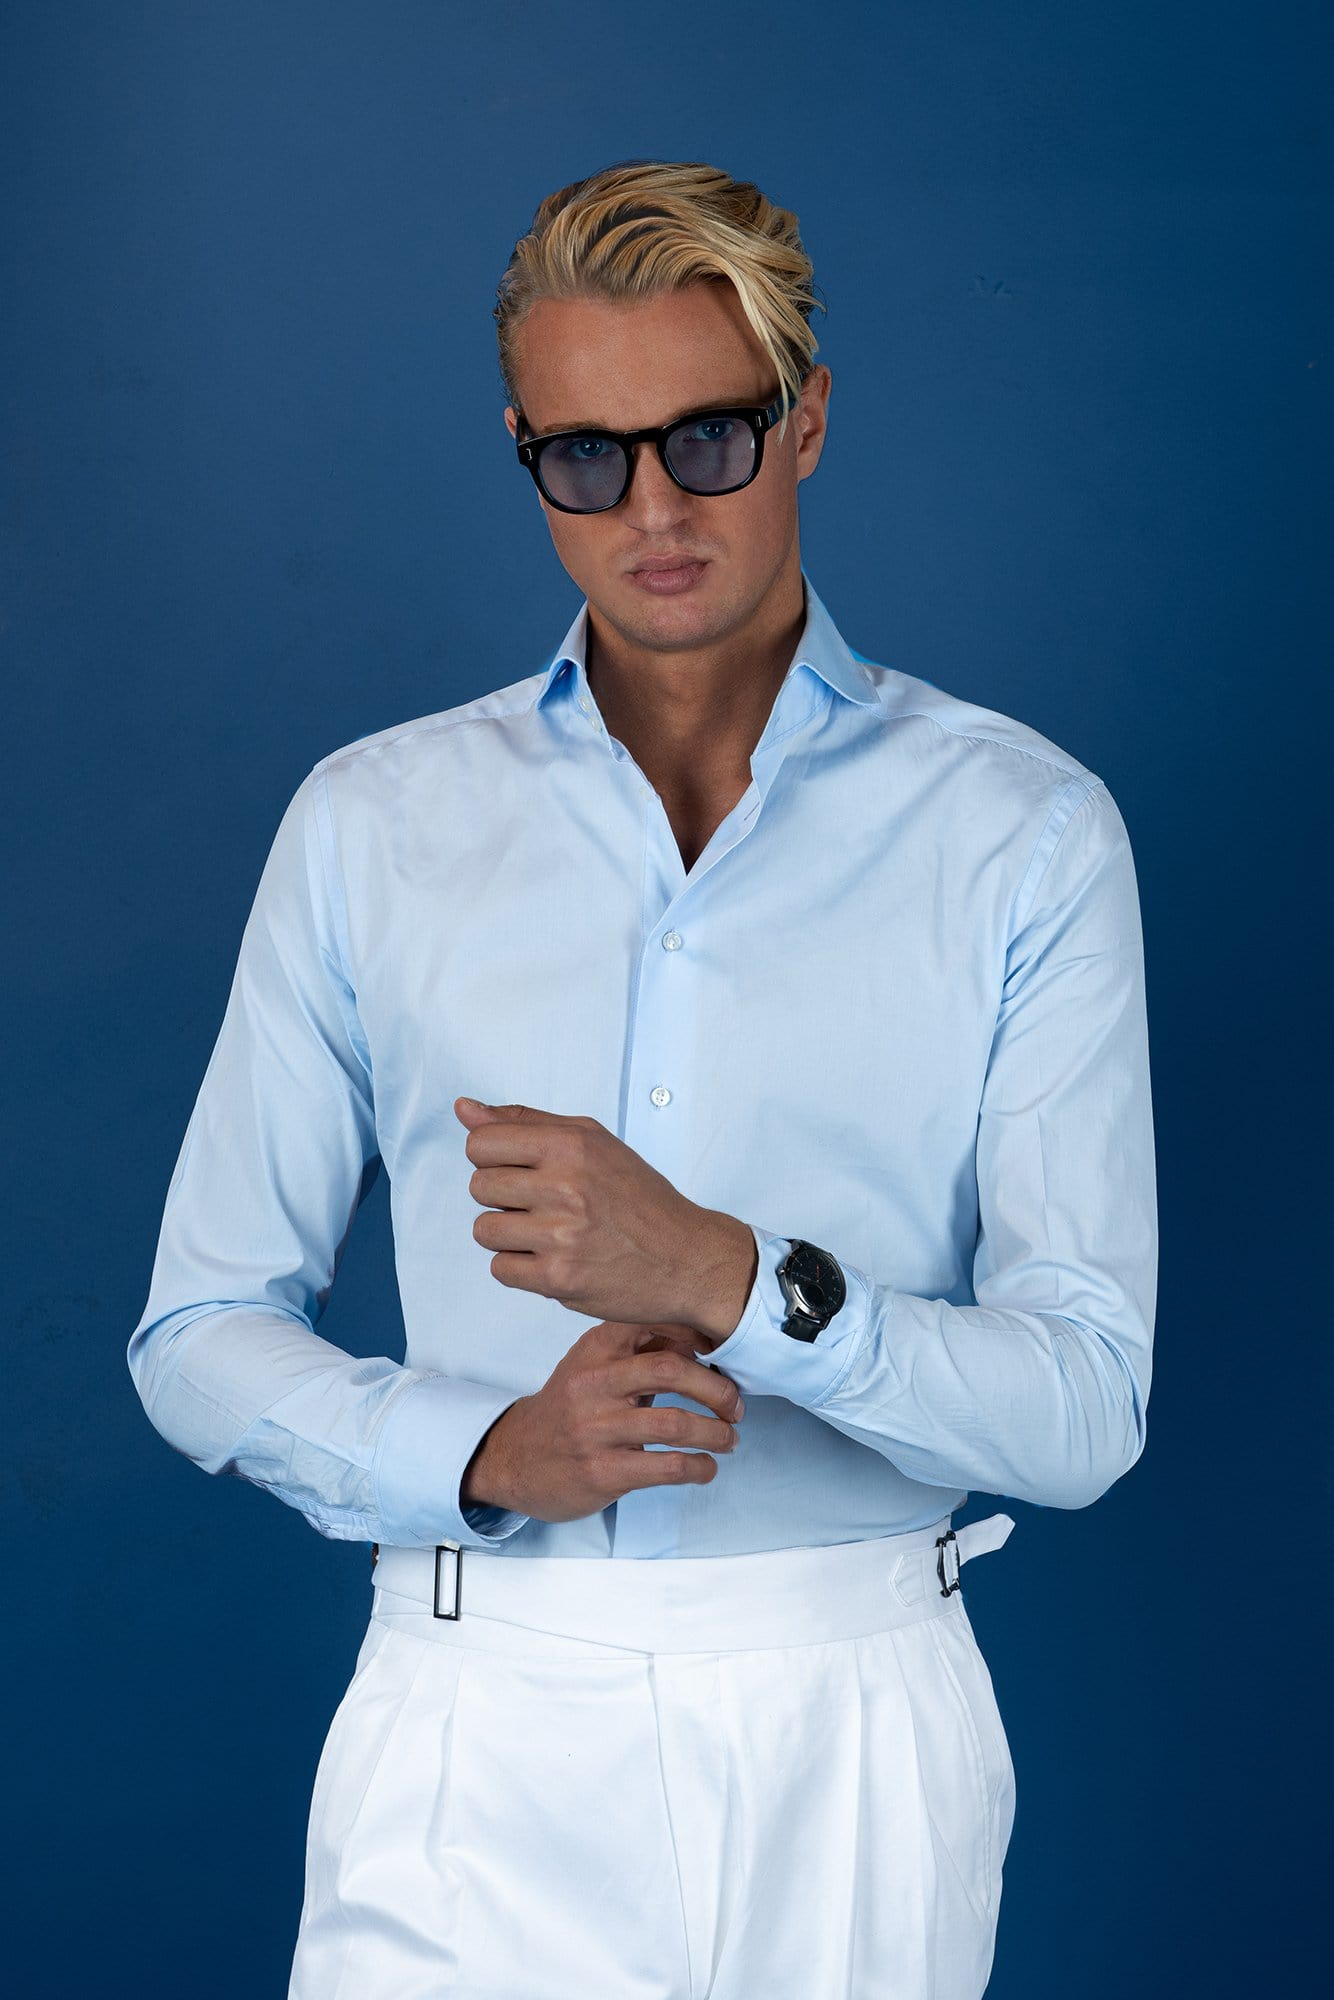 L'avvocato Blue Shirt - Grand Le Mar